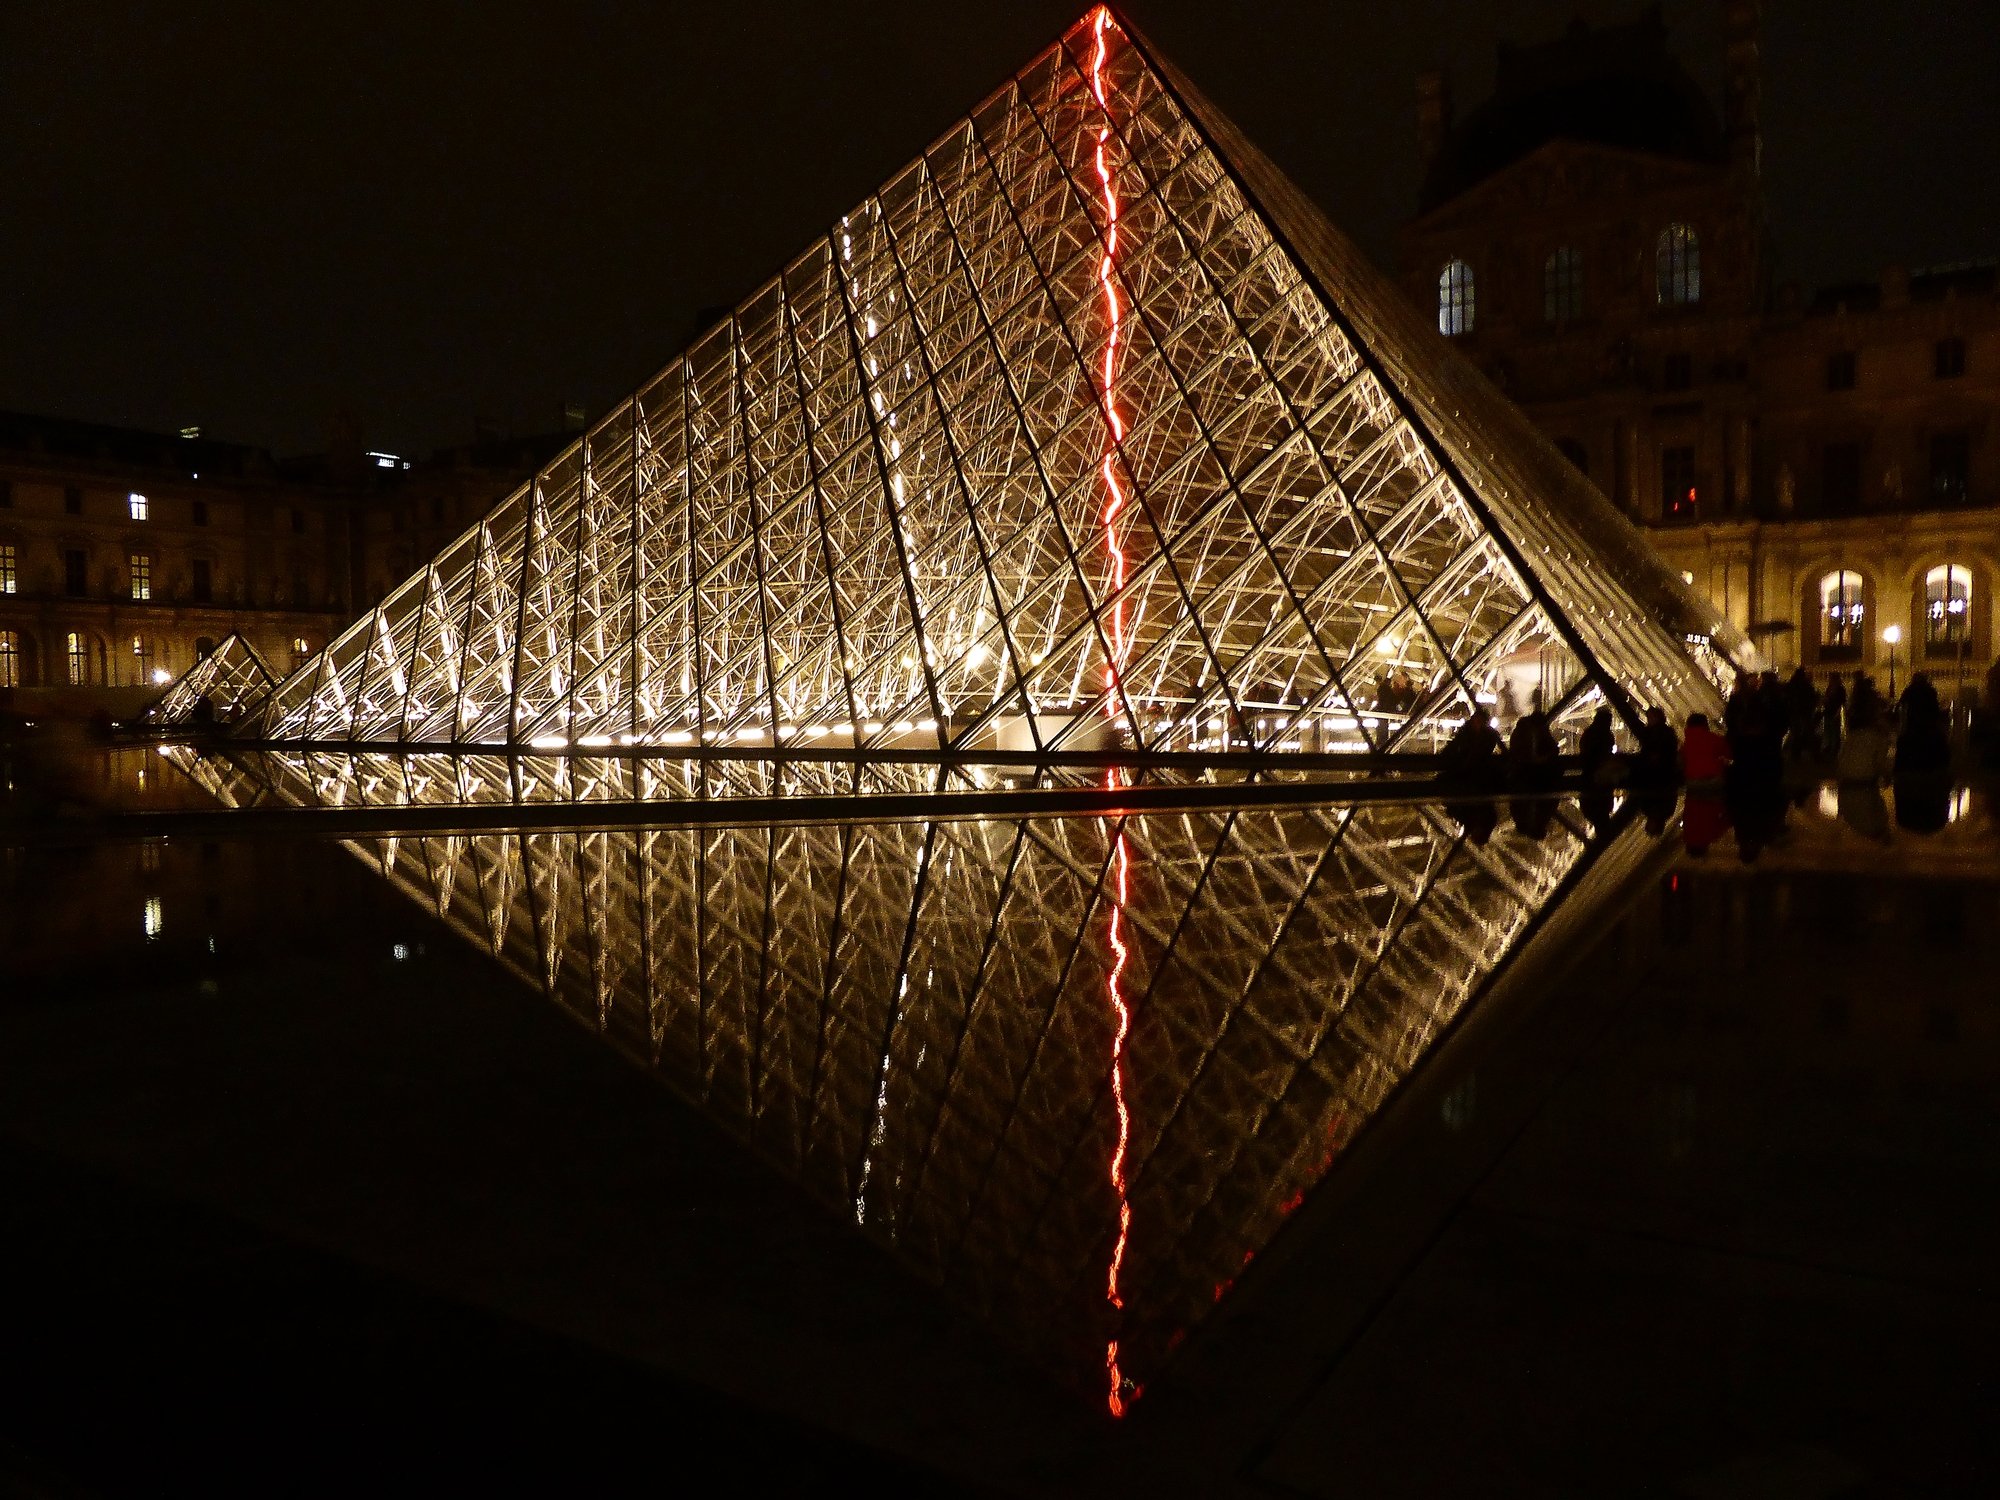 La pyramide du Louvre | Paris, France | Photo : VS